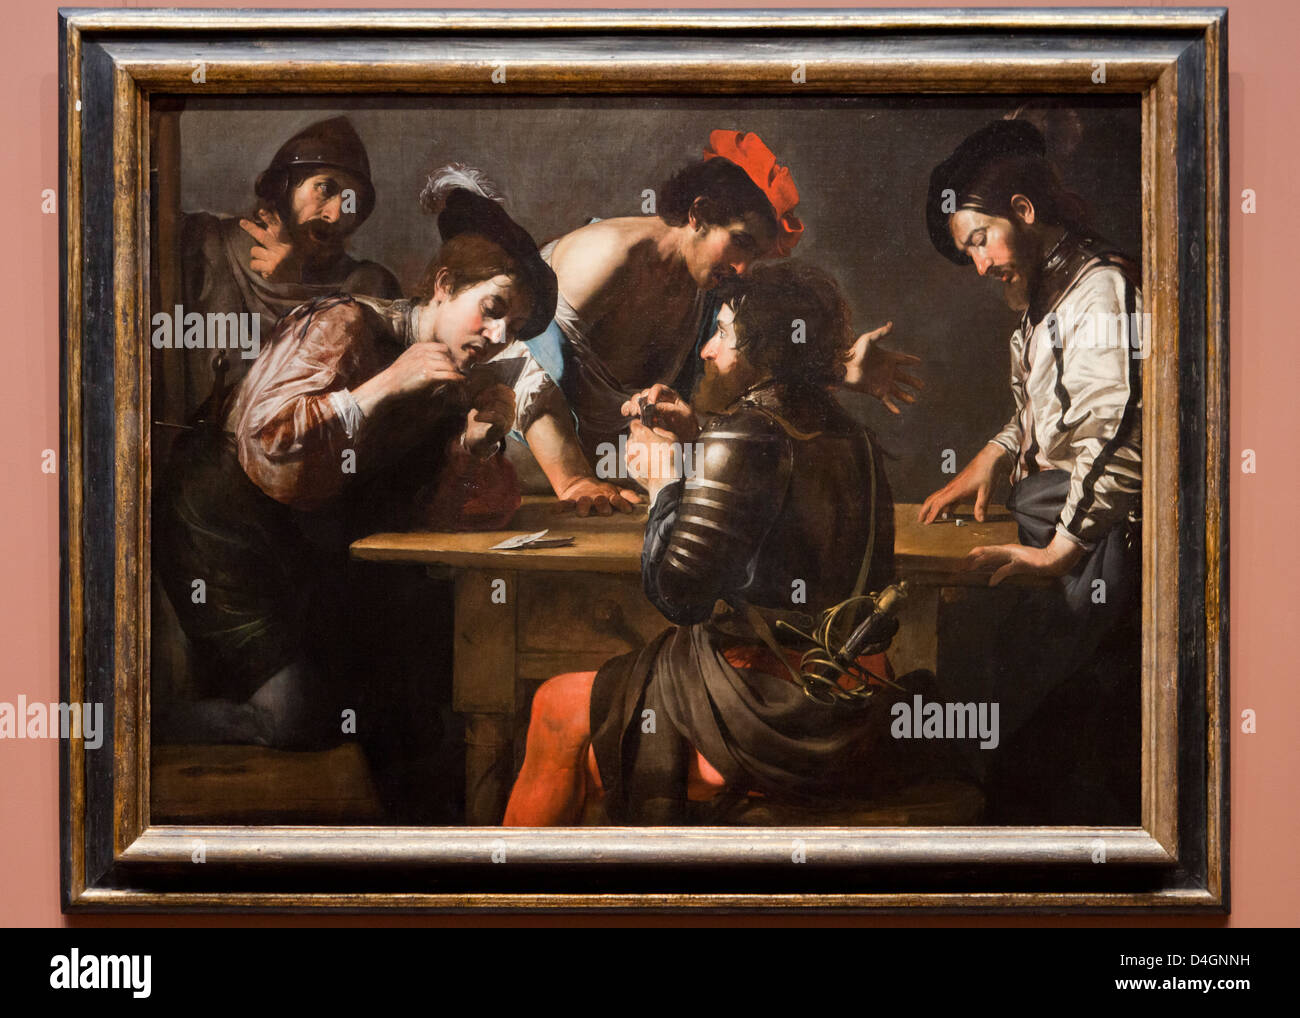 Solders Playing Cards and Dice (The Cheats) by Valentin de Boulogne, 1620 - Smithsonian National Gallery of Art, - Stock Image